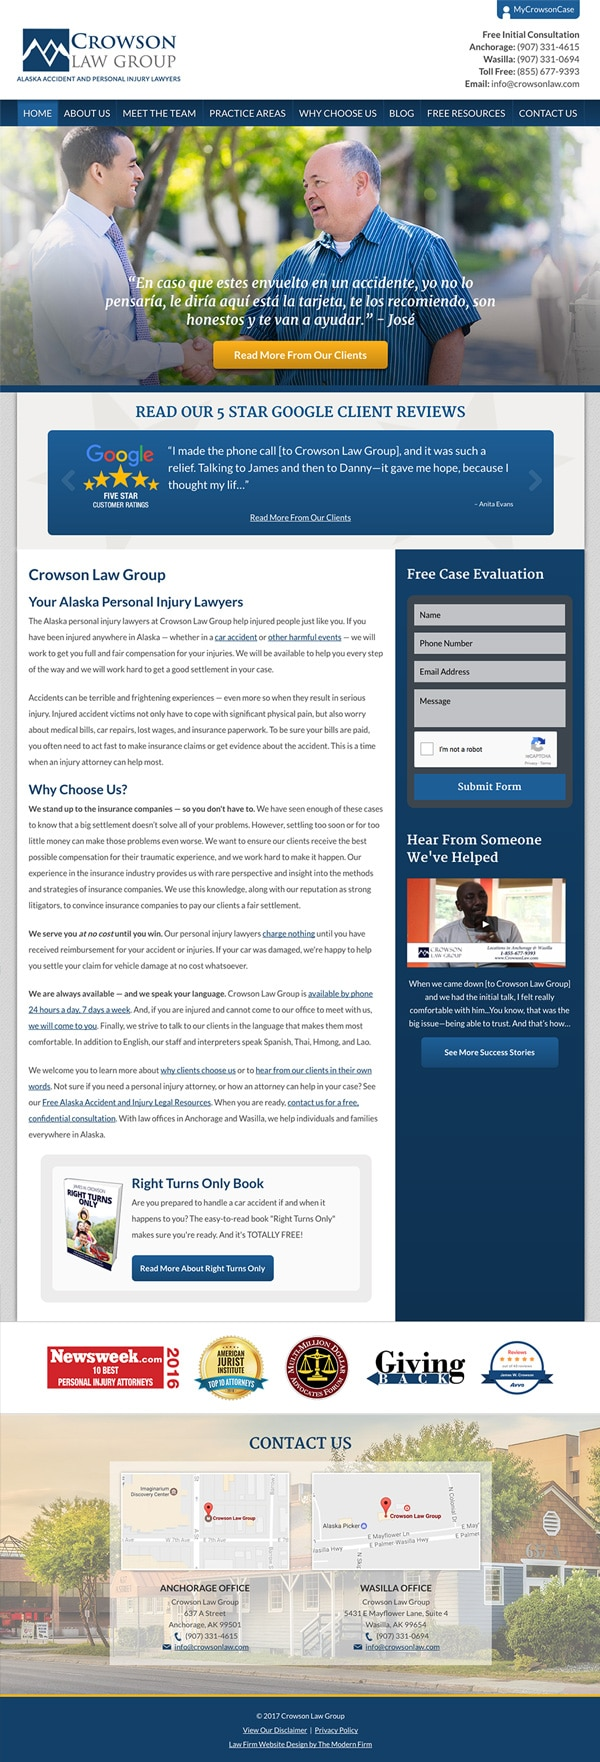 Law Firm Website Design for Crowson Law Group